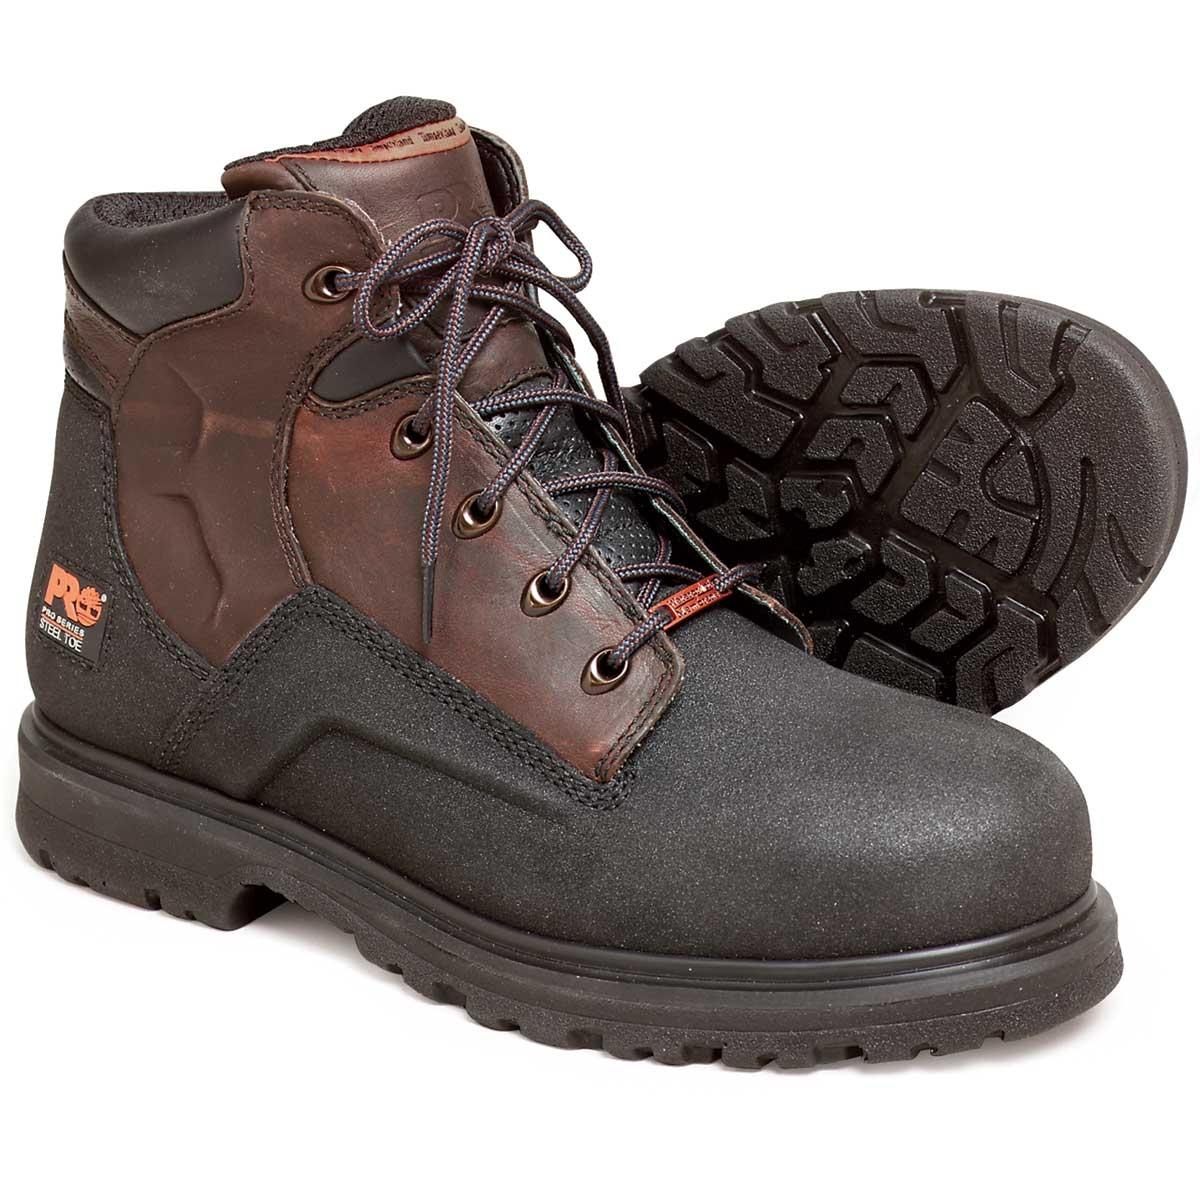 pro series work boots